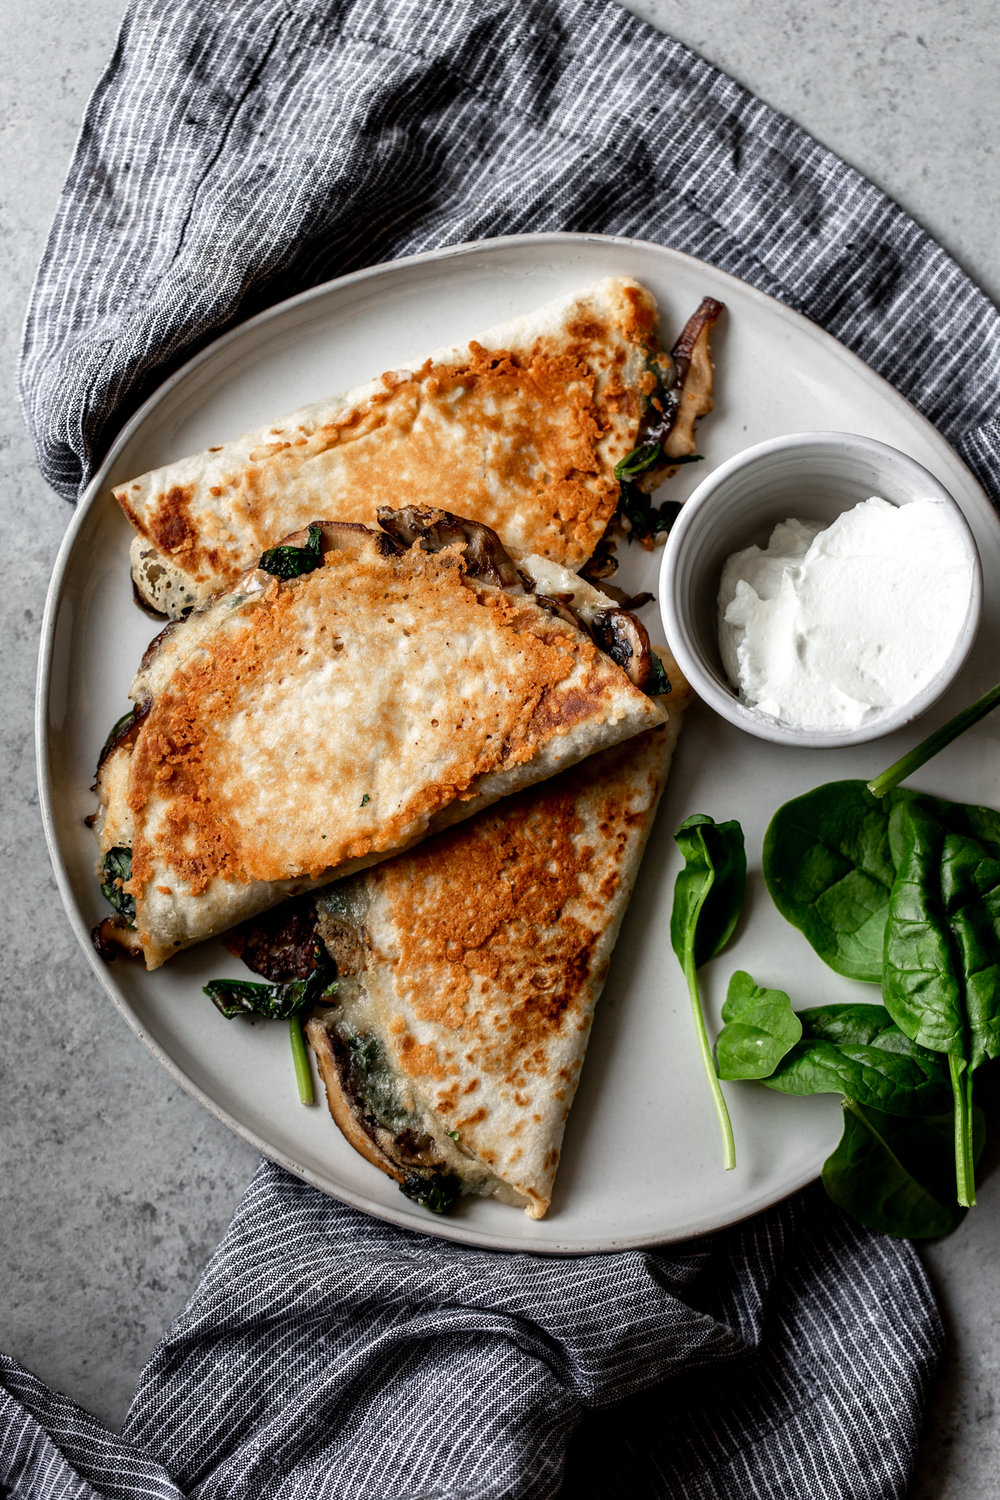 Mushroom and Spinach Quesadillas recipe from cooking with cocktail rings